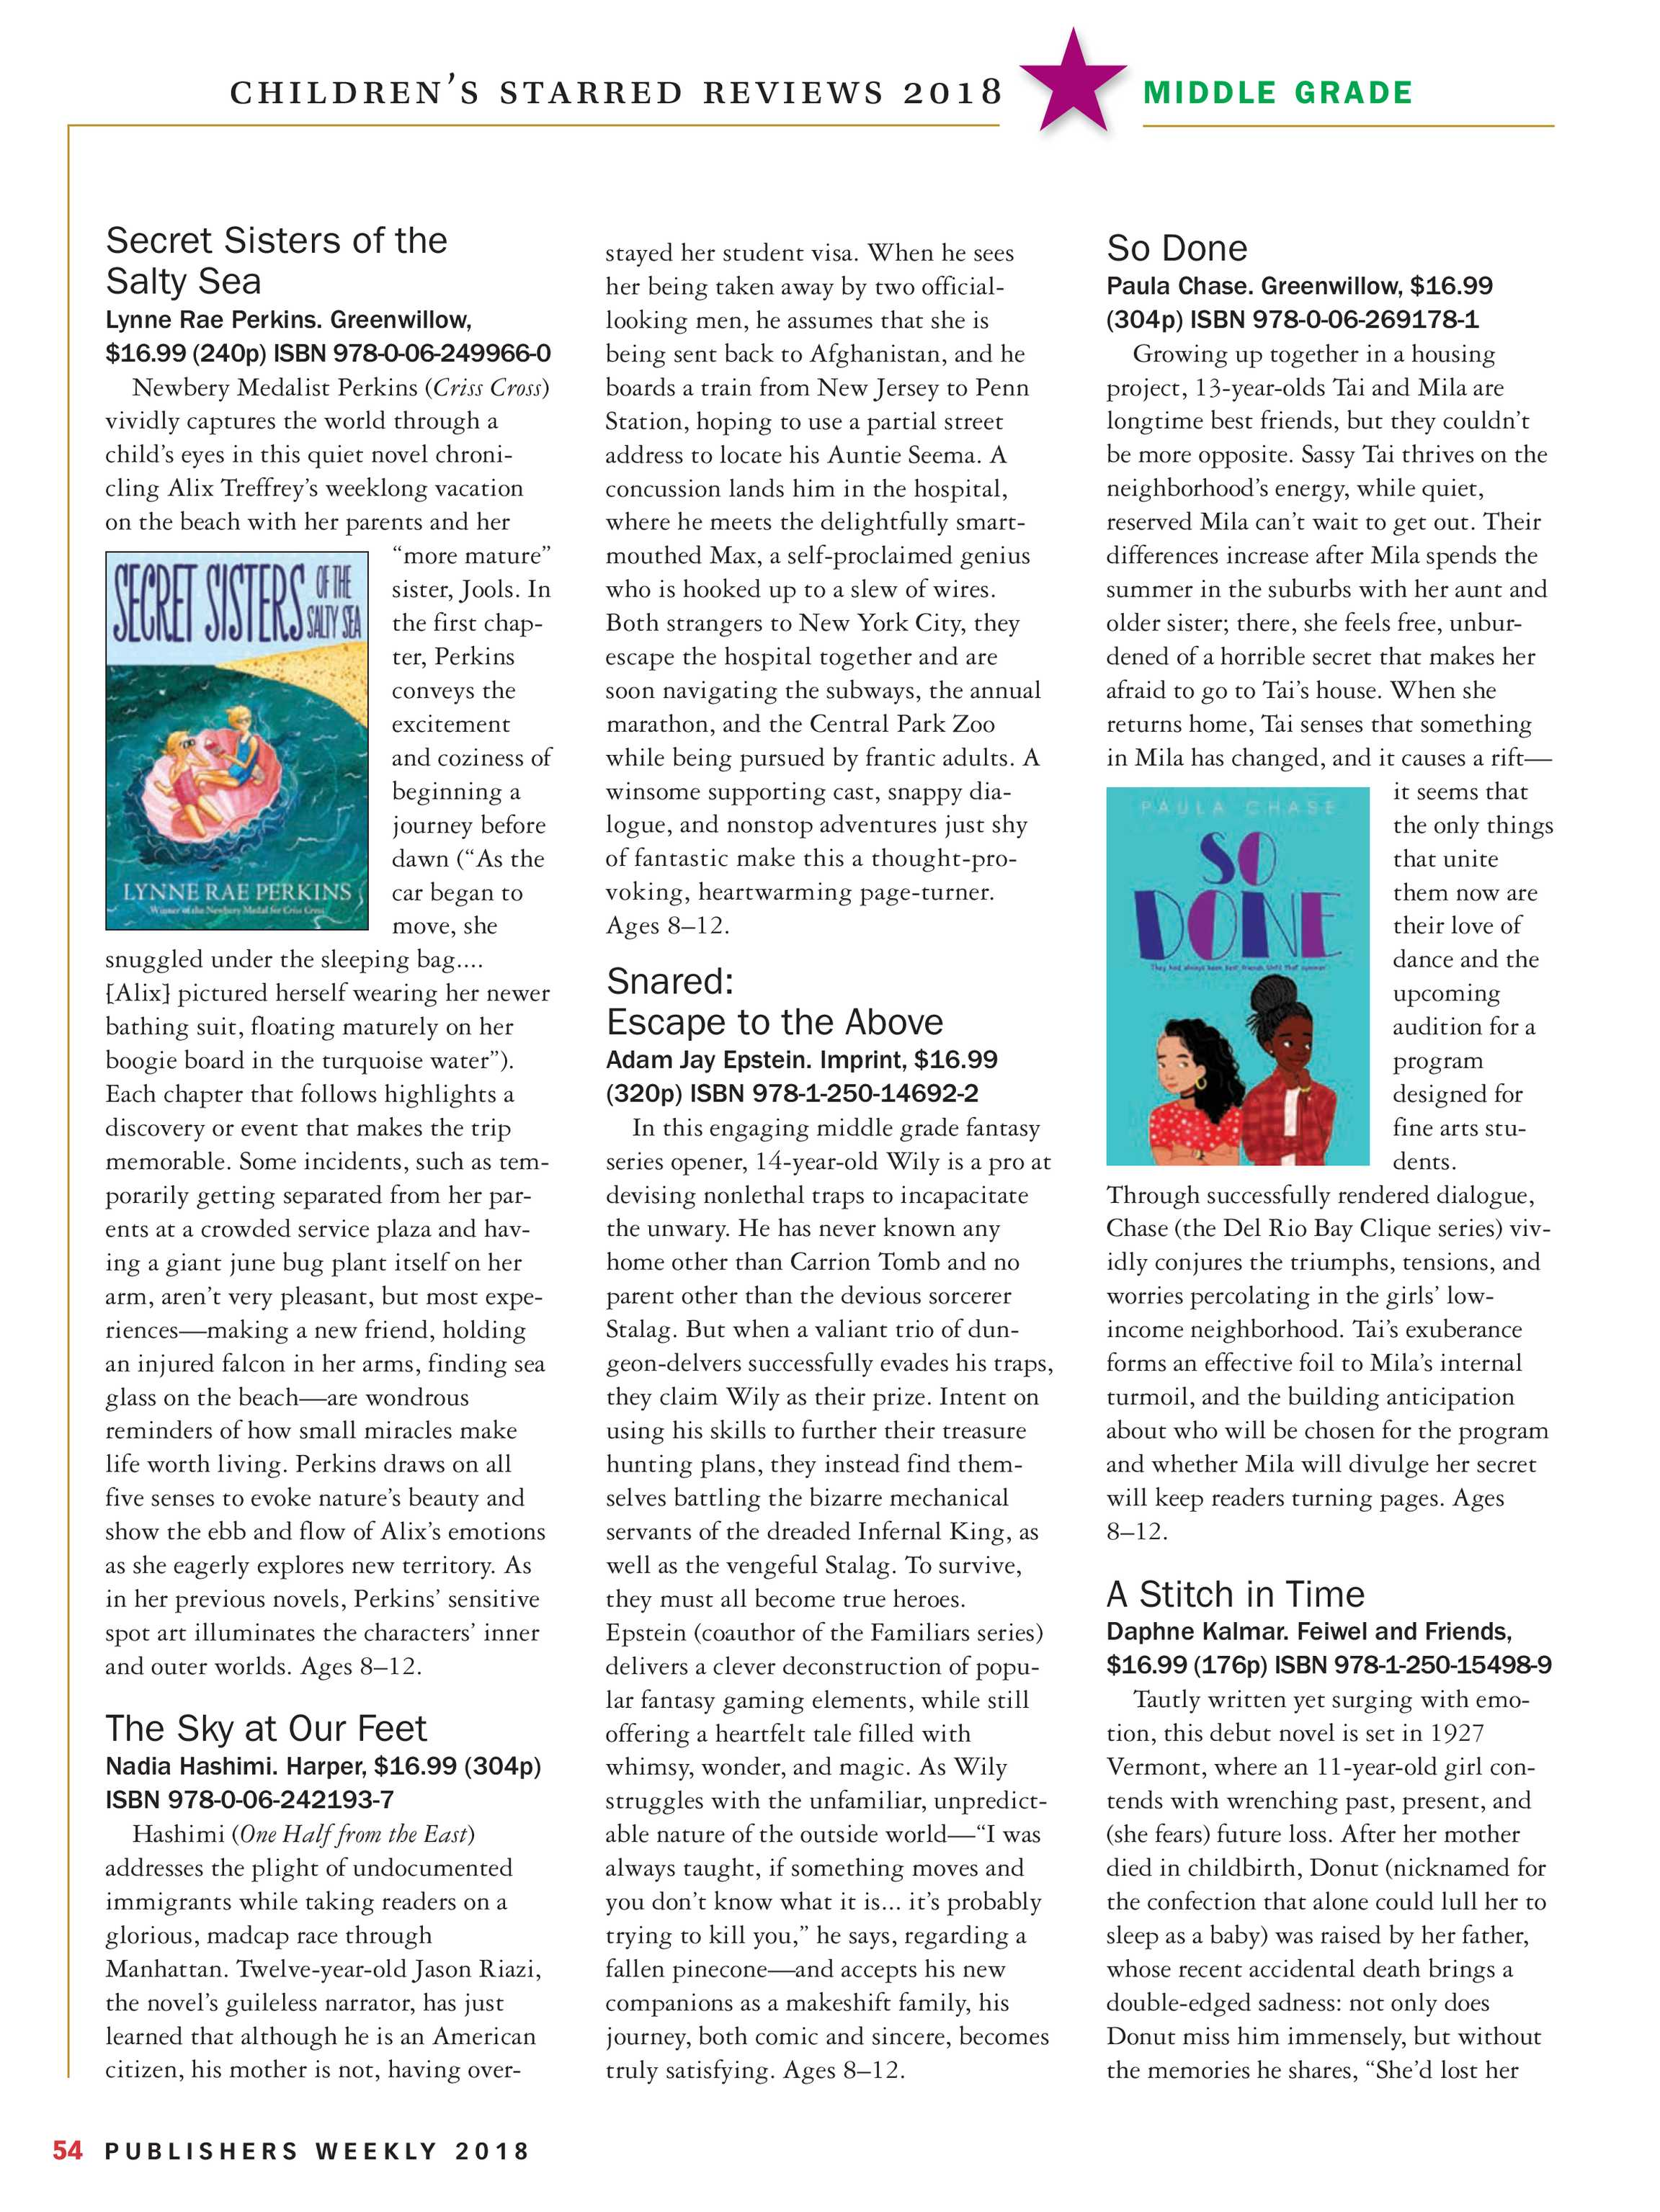 Publishers Weekly - Children's Starred Reviews 2018 - page 55